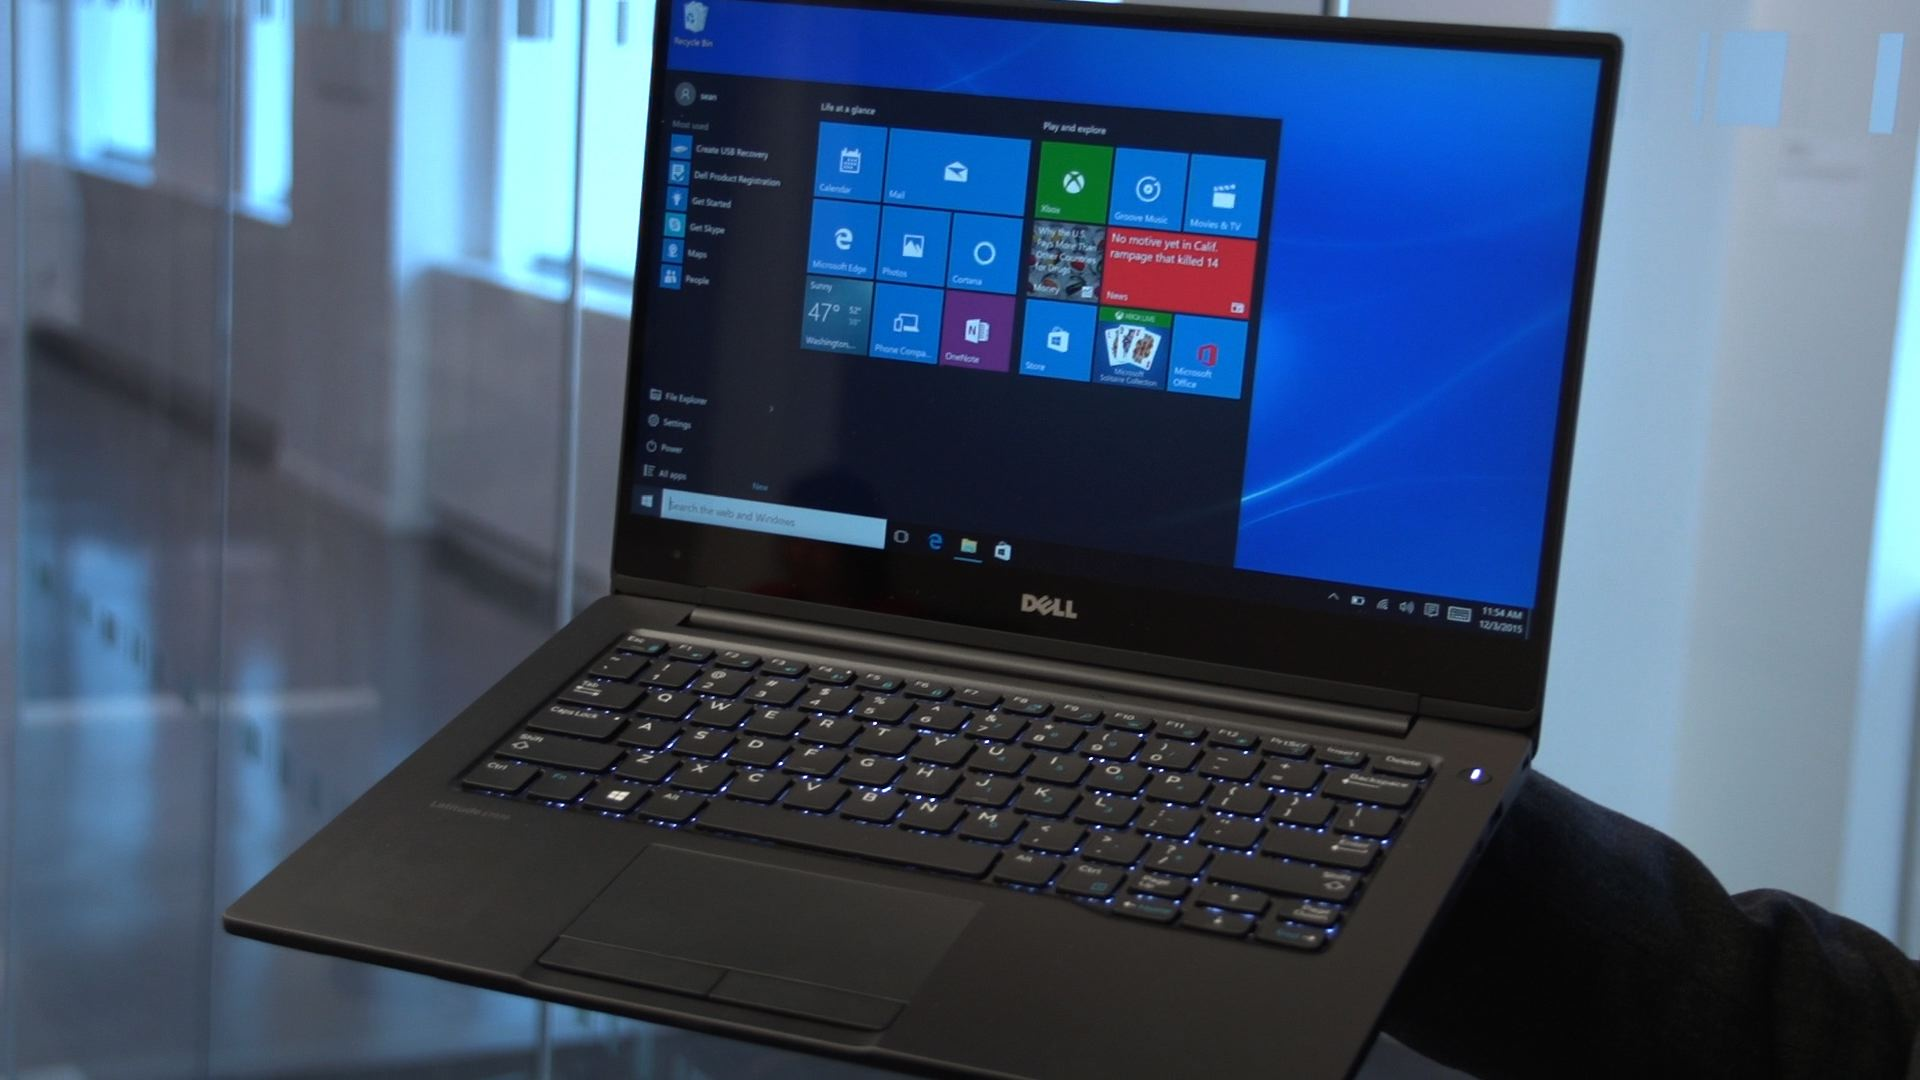 Video: Dell brings infinity display to the pro-level Latitude 7370